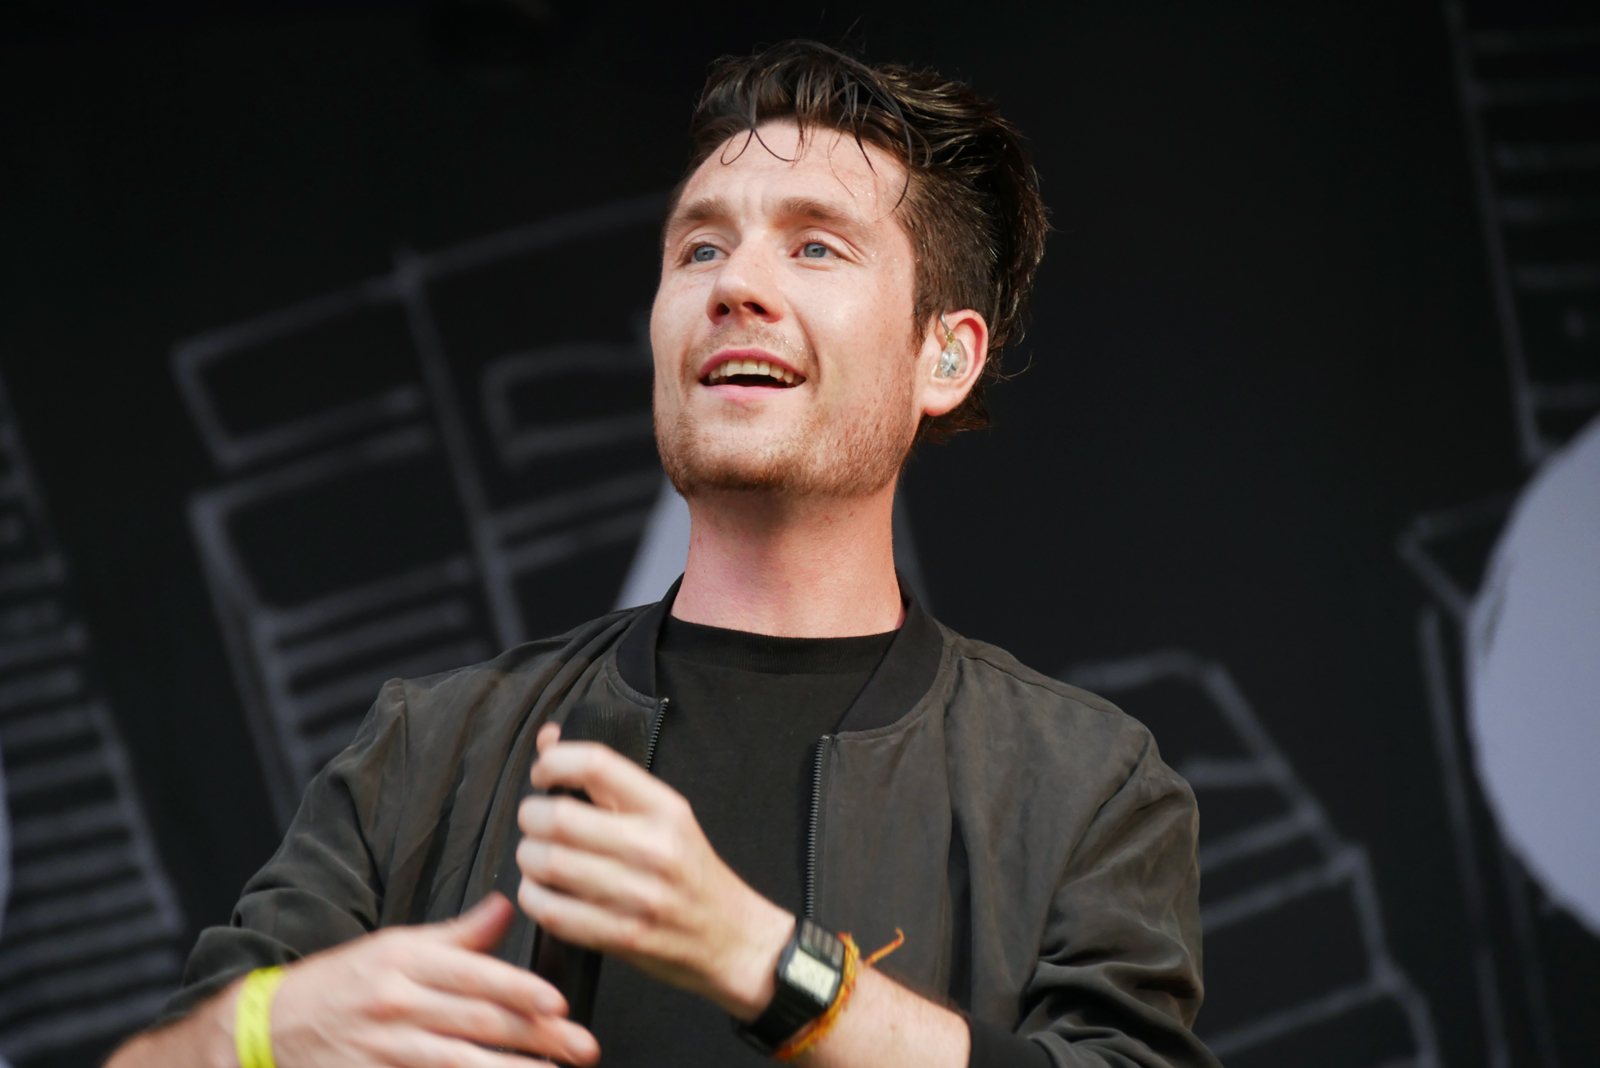 Dan Smith Bastille band singer live concert Rock en Seine 2016 festival paris stage photo usofparis blog